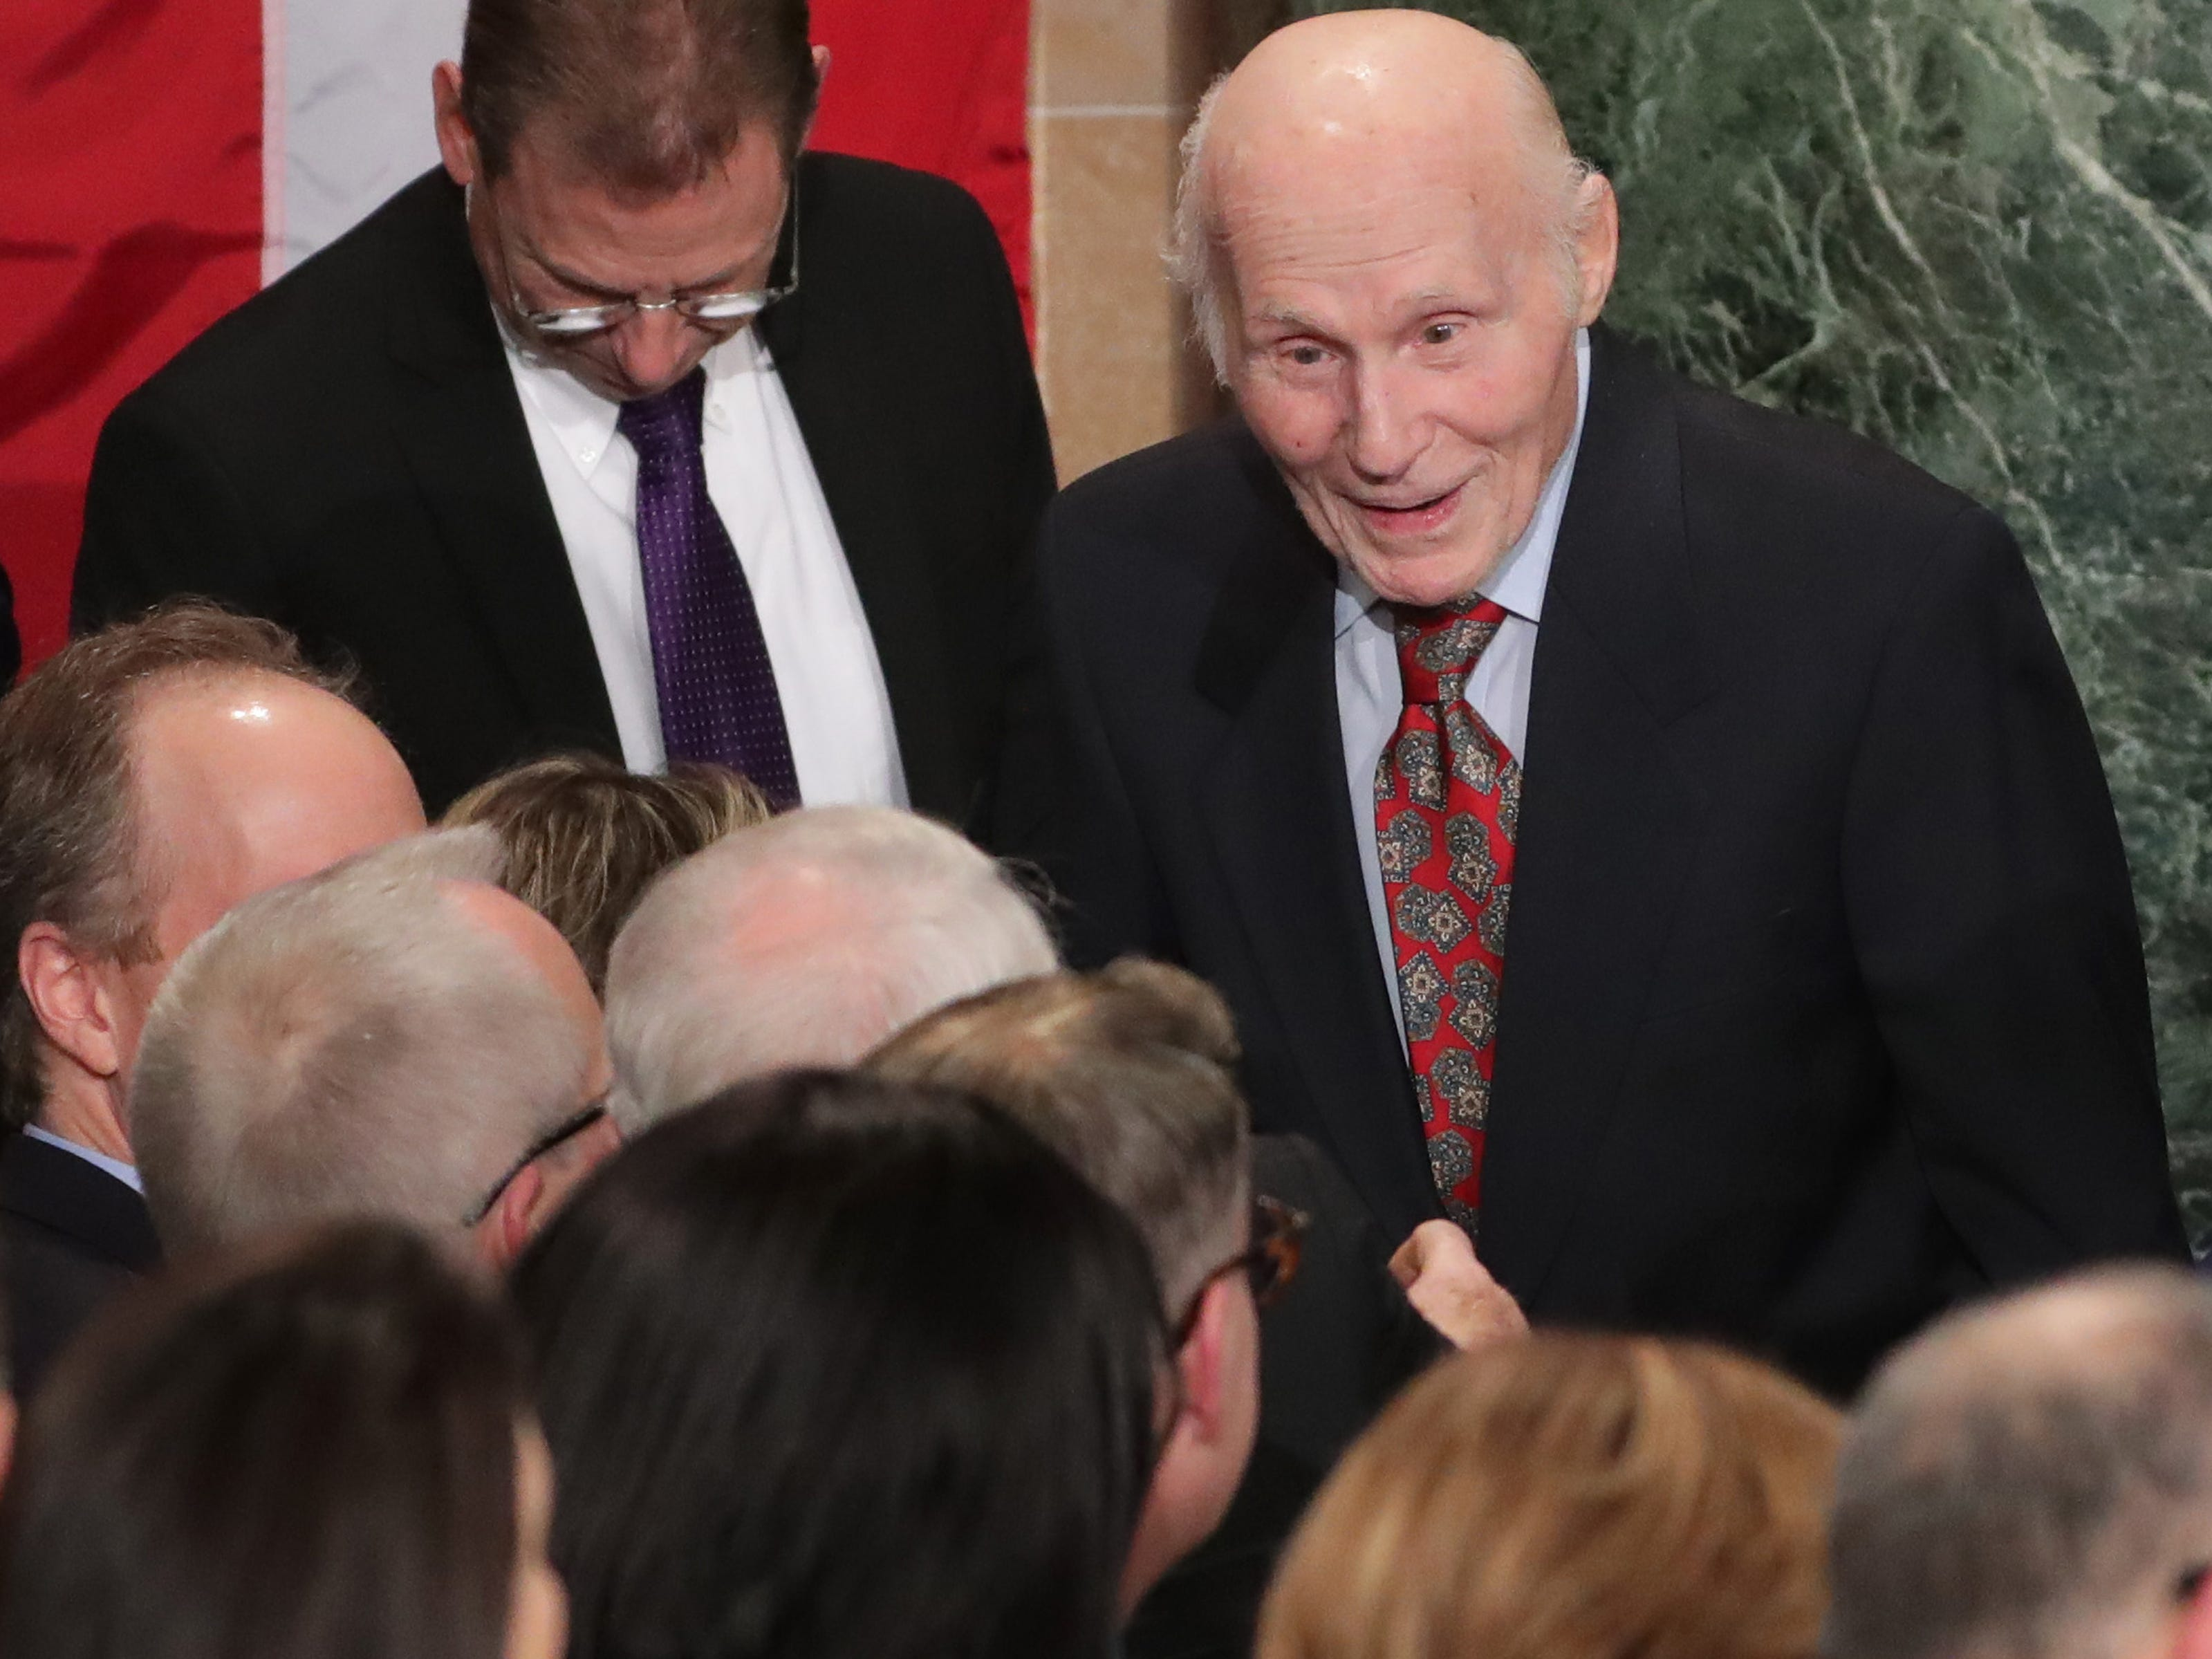 Former U.S. Sen. Herb Kohl finds his seat before the inauguration.